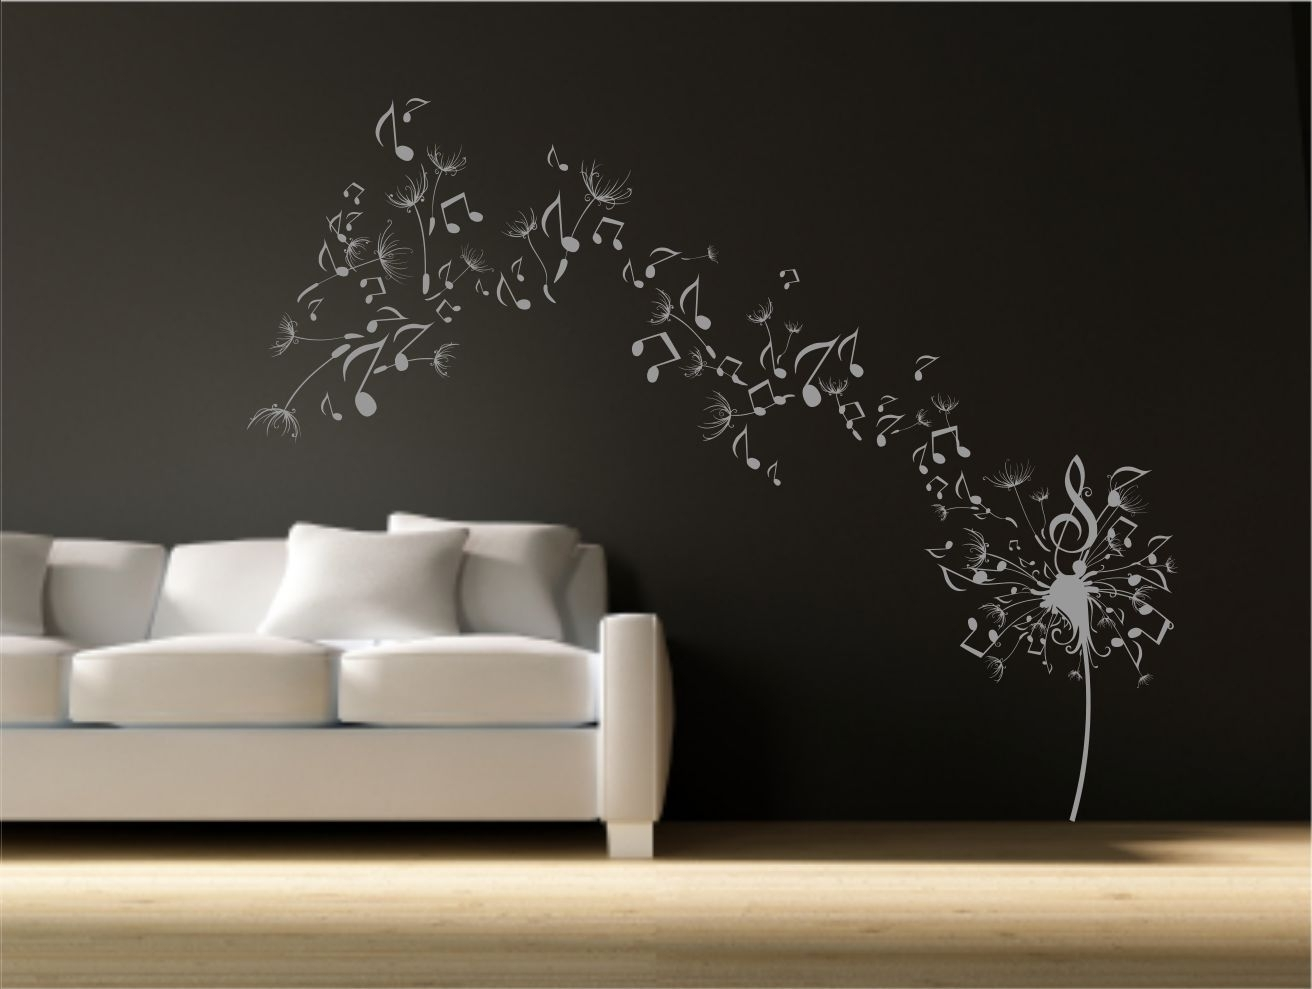 Dandelion Clock Seeds Music Note Wall Decal Sticker Transfer Stencil With Regard To Most Popular Dandelion Wall Art (View 3 of 15)